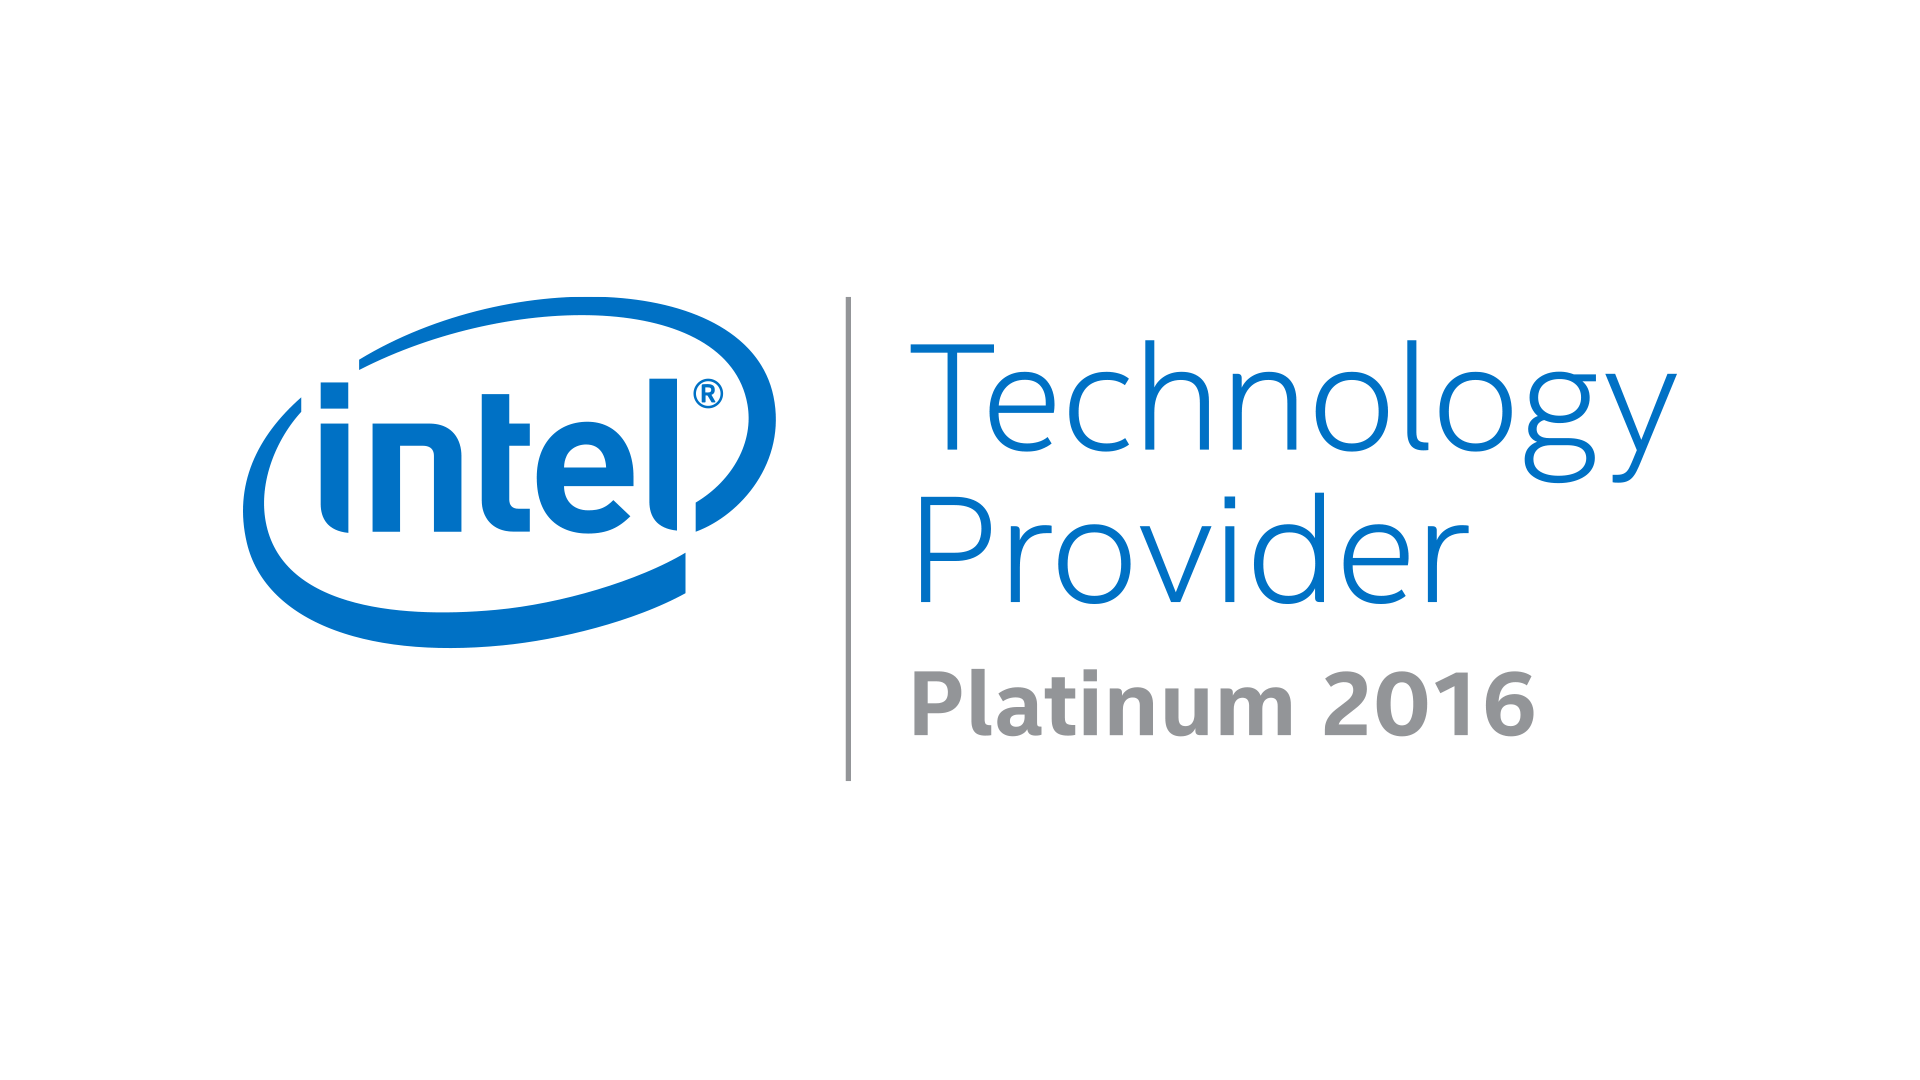 technology-provider-platinum-2016-badge-16x9